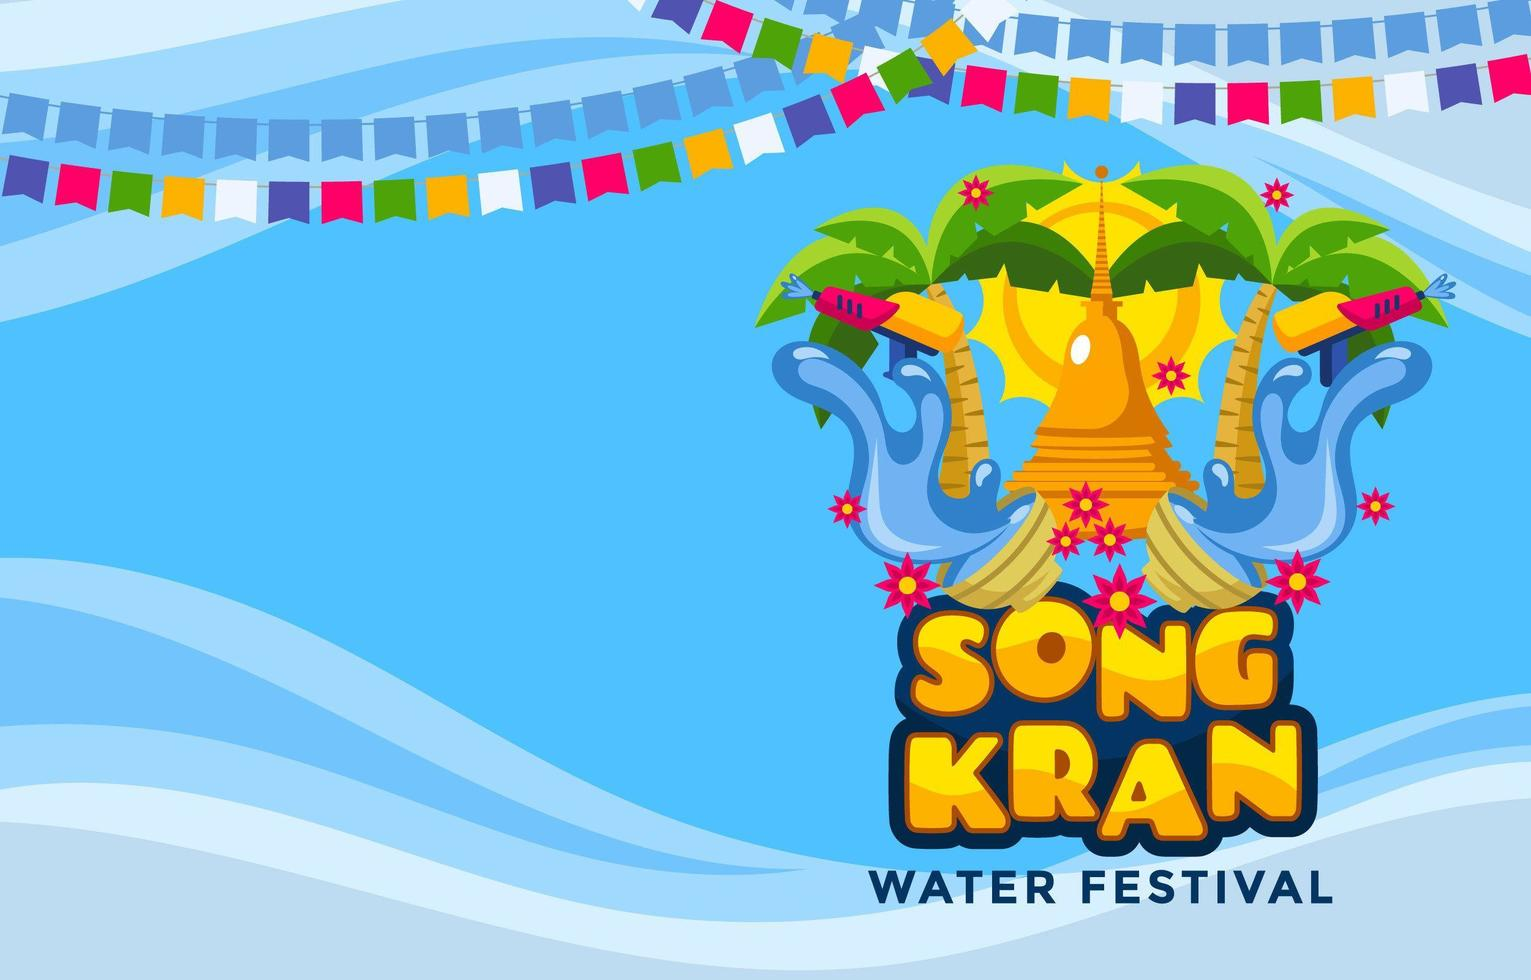 The Great Traditional Songkran Water Festival Background vector